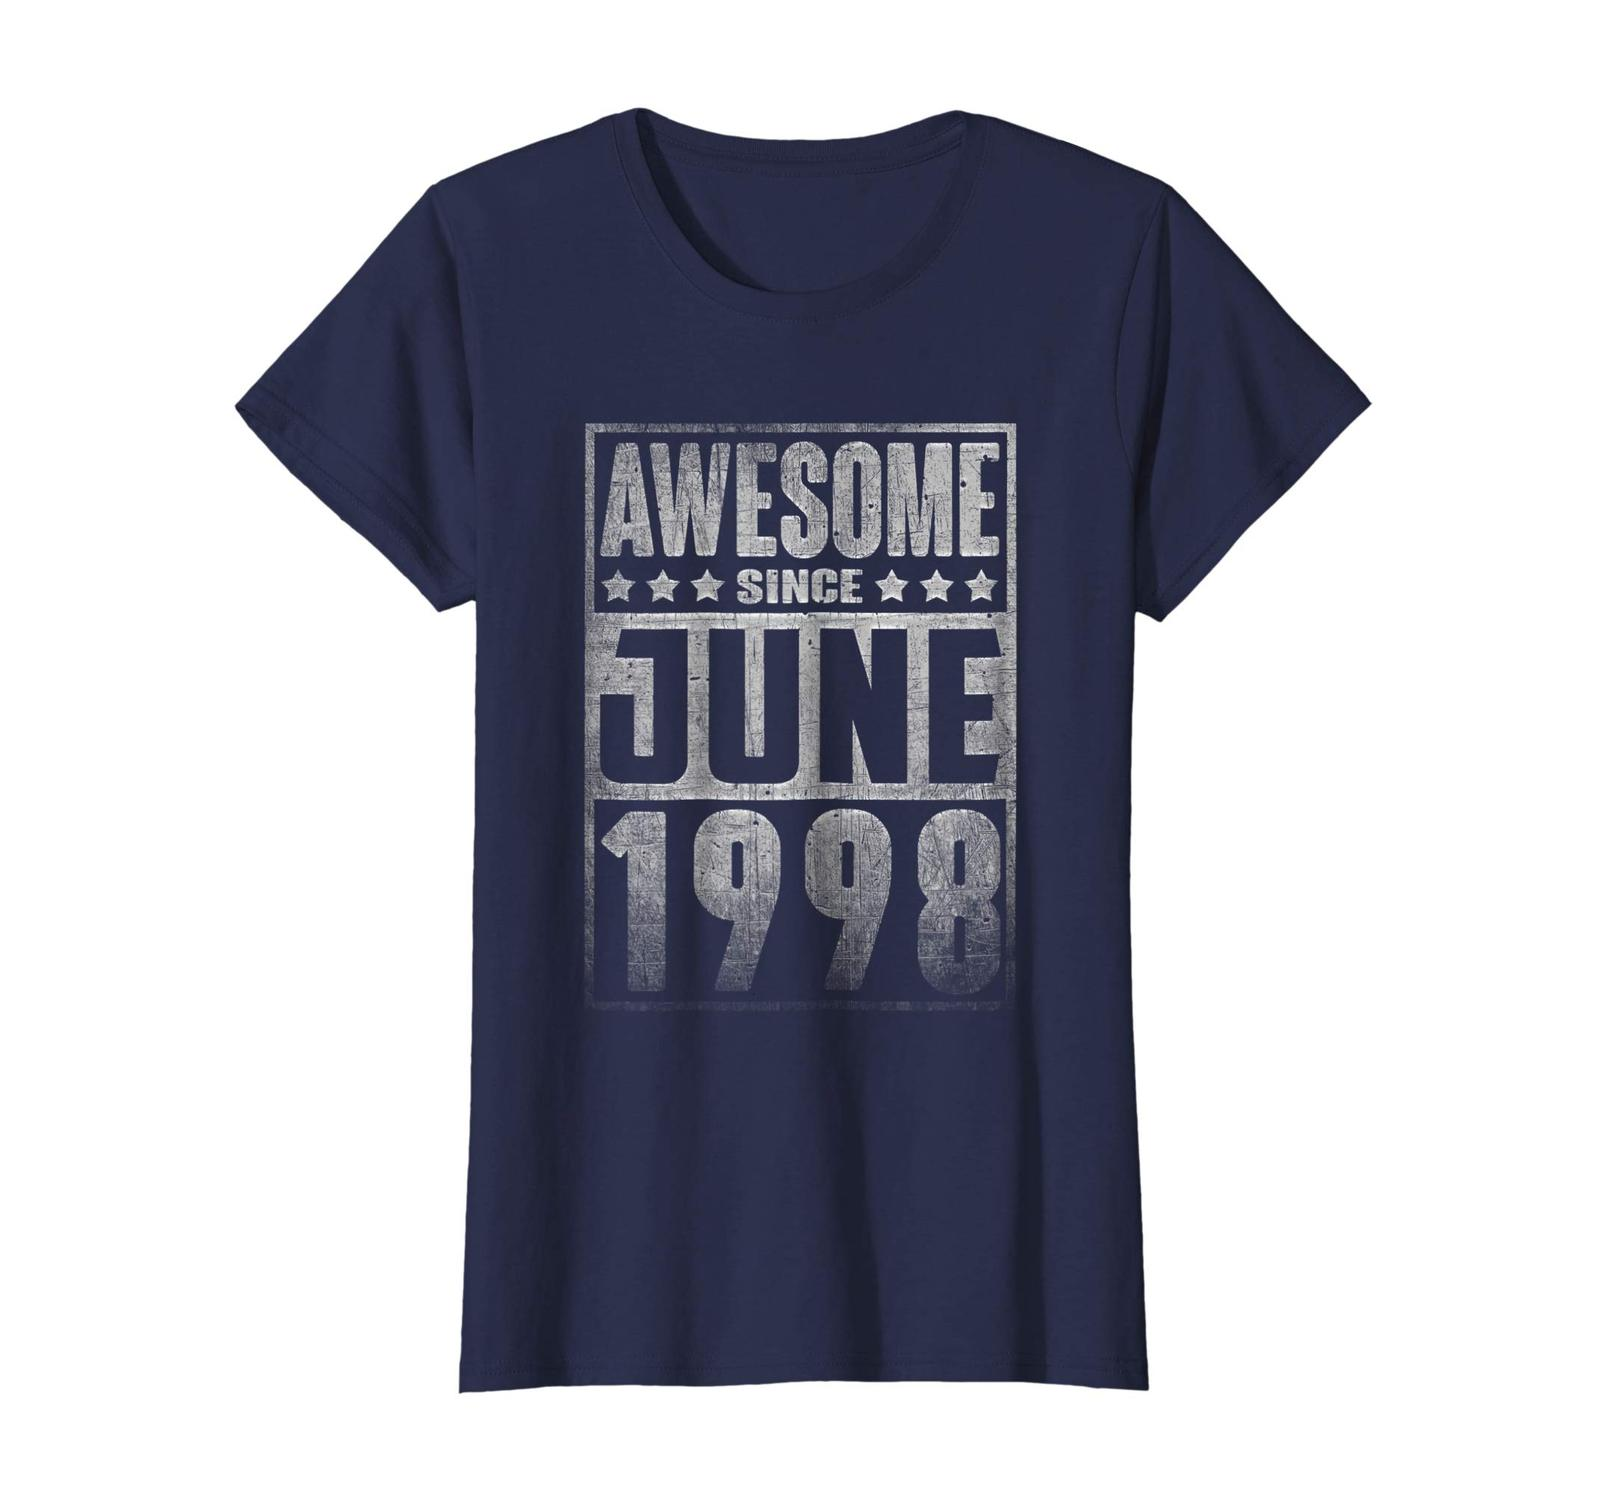 Uncle Shirts -   Awesome Since JUNE 1998 Straight Outta 20 Years Old Being Wowen image 3